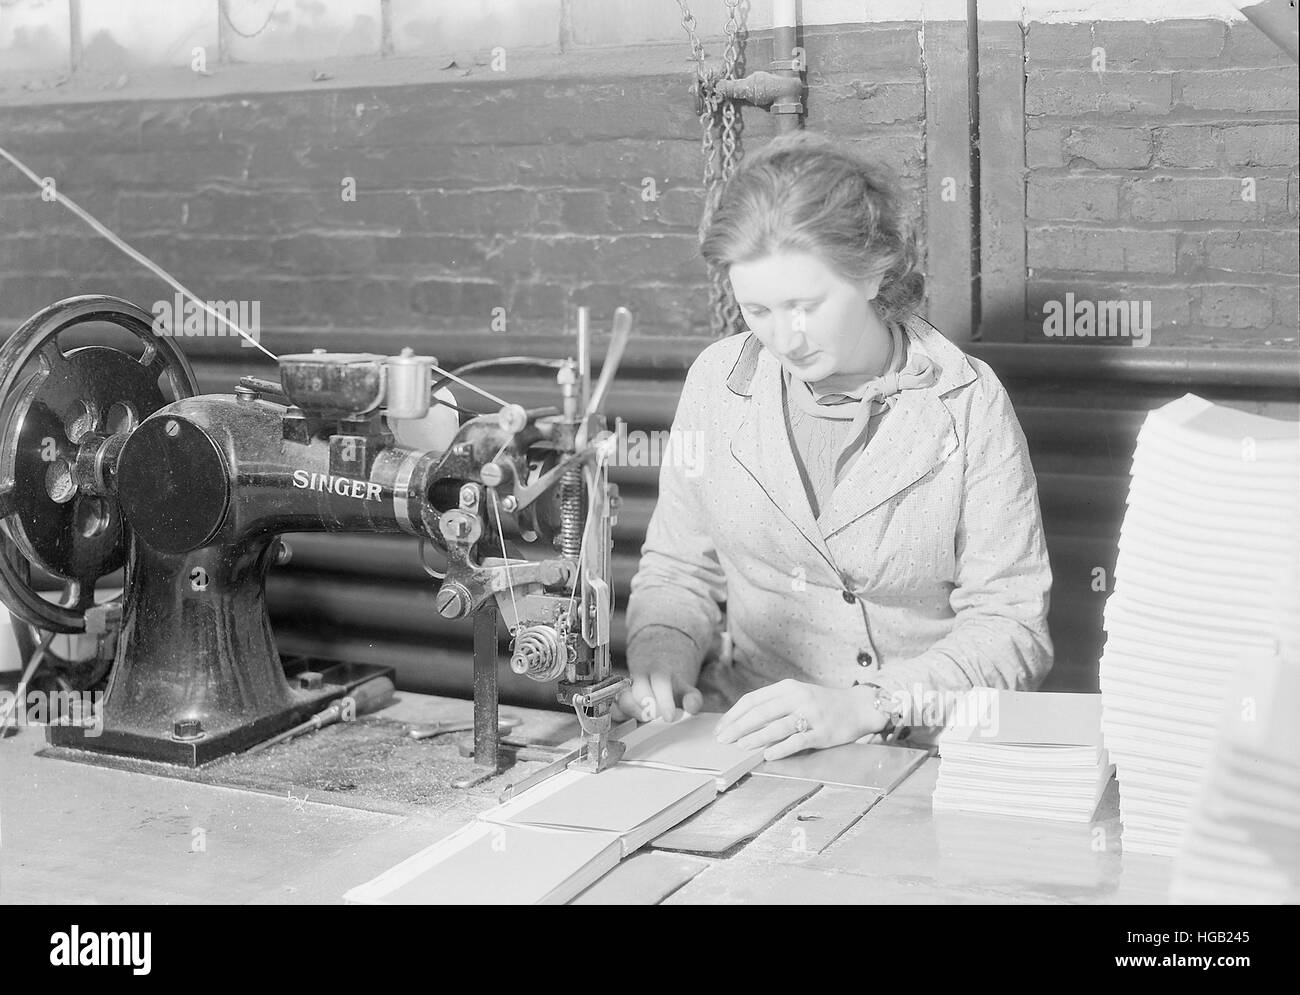 Woman side stitching books at the Kingsport Press, Tennessee, 1933. - Stock Image